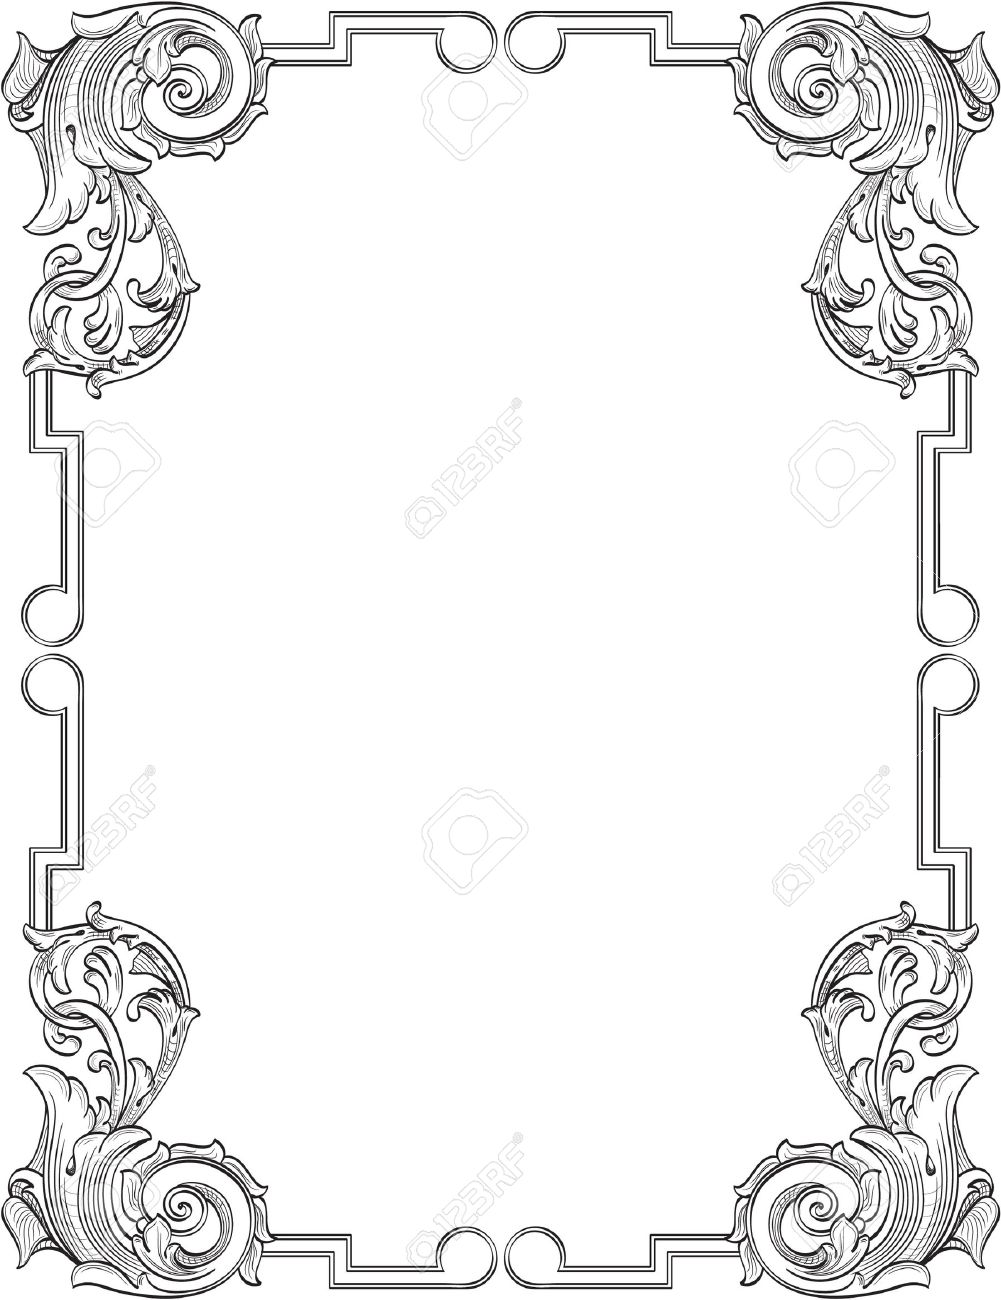 73309 Edge Design Cliparts Stock Vector And Royalty Free Edge in clipart edge design intended for your inspiration